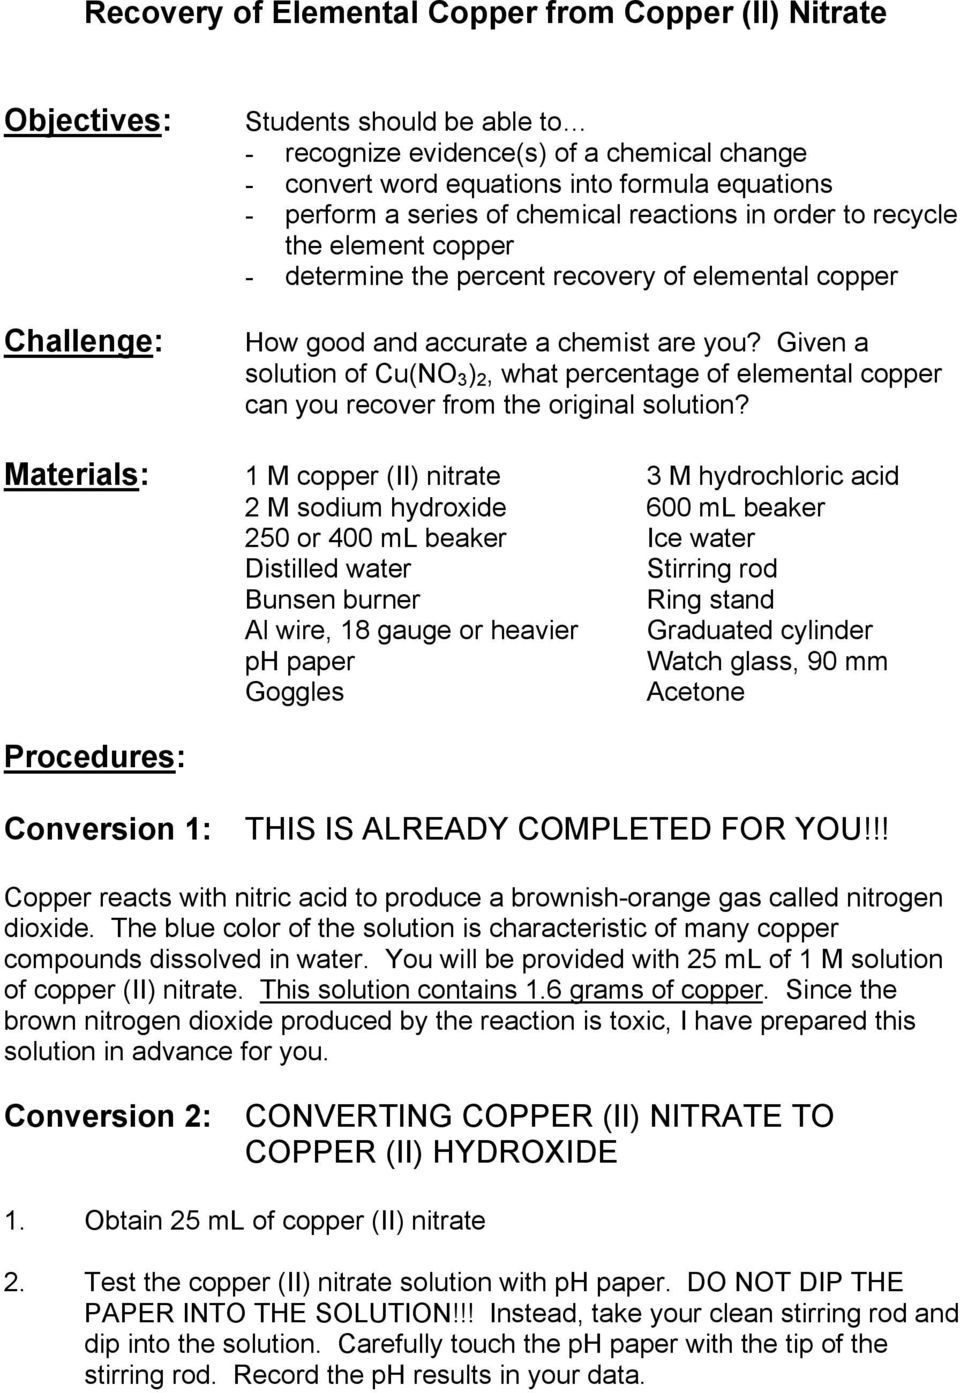 Recovery of Elemental Copper from Copper (II) Nitrate - PDF